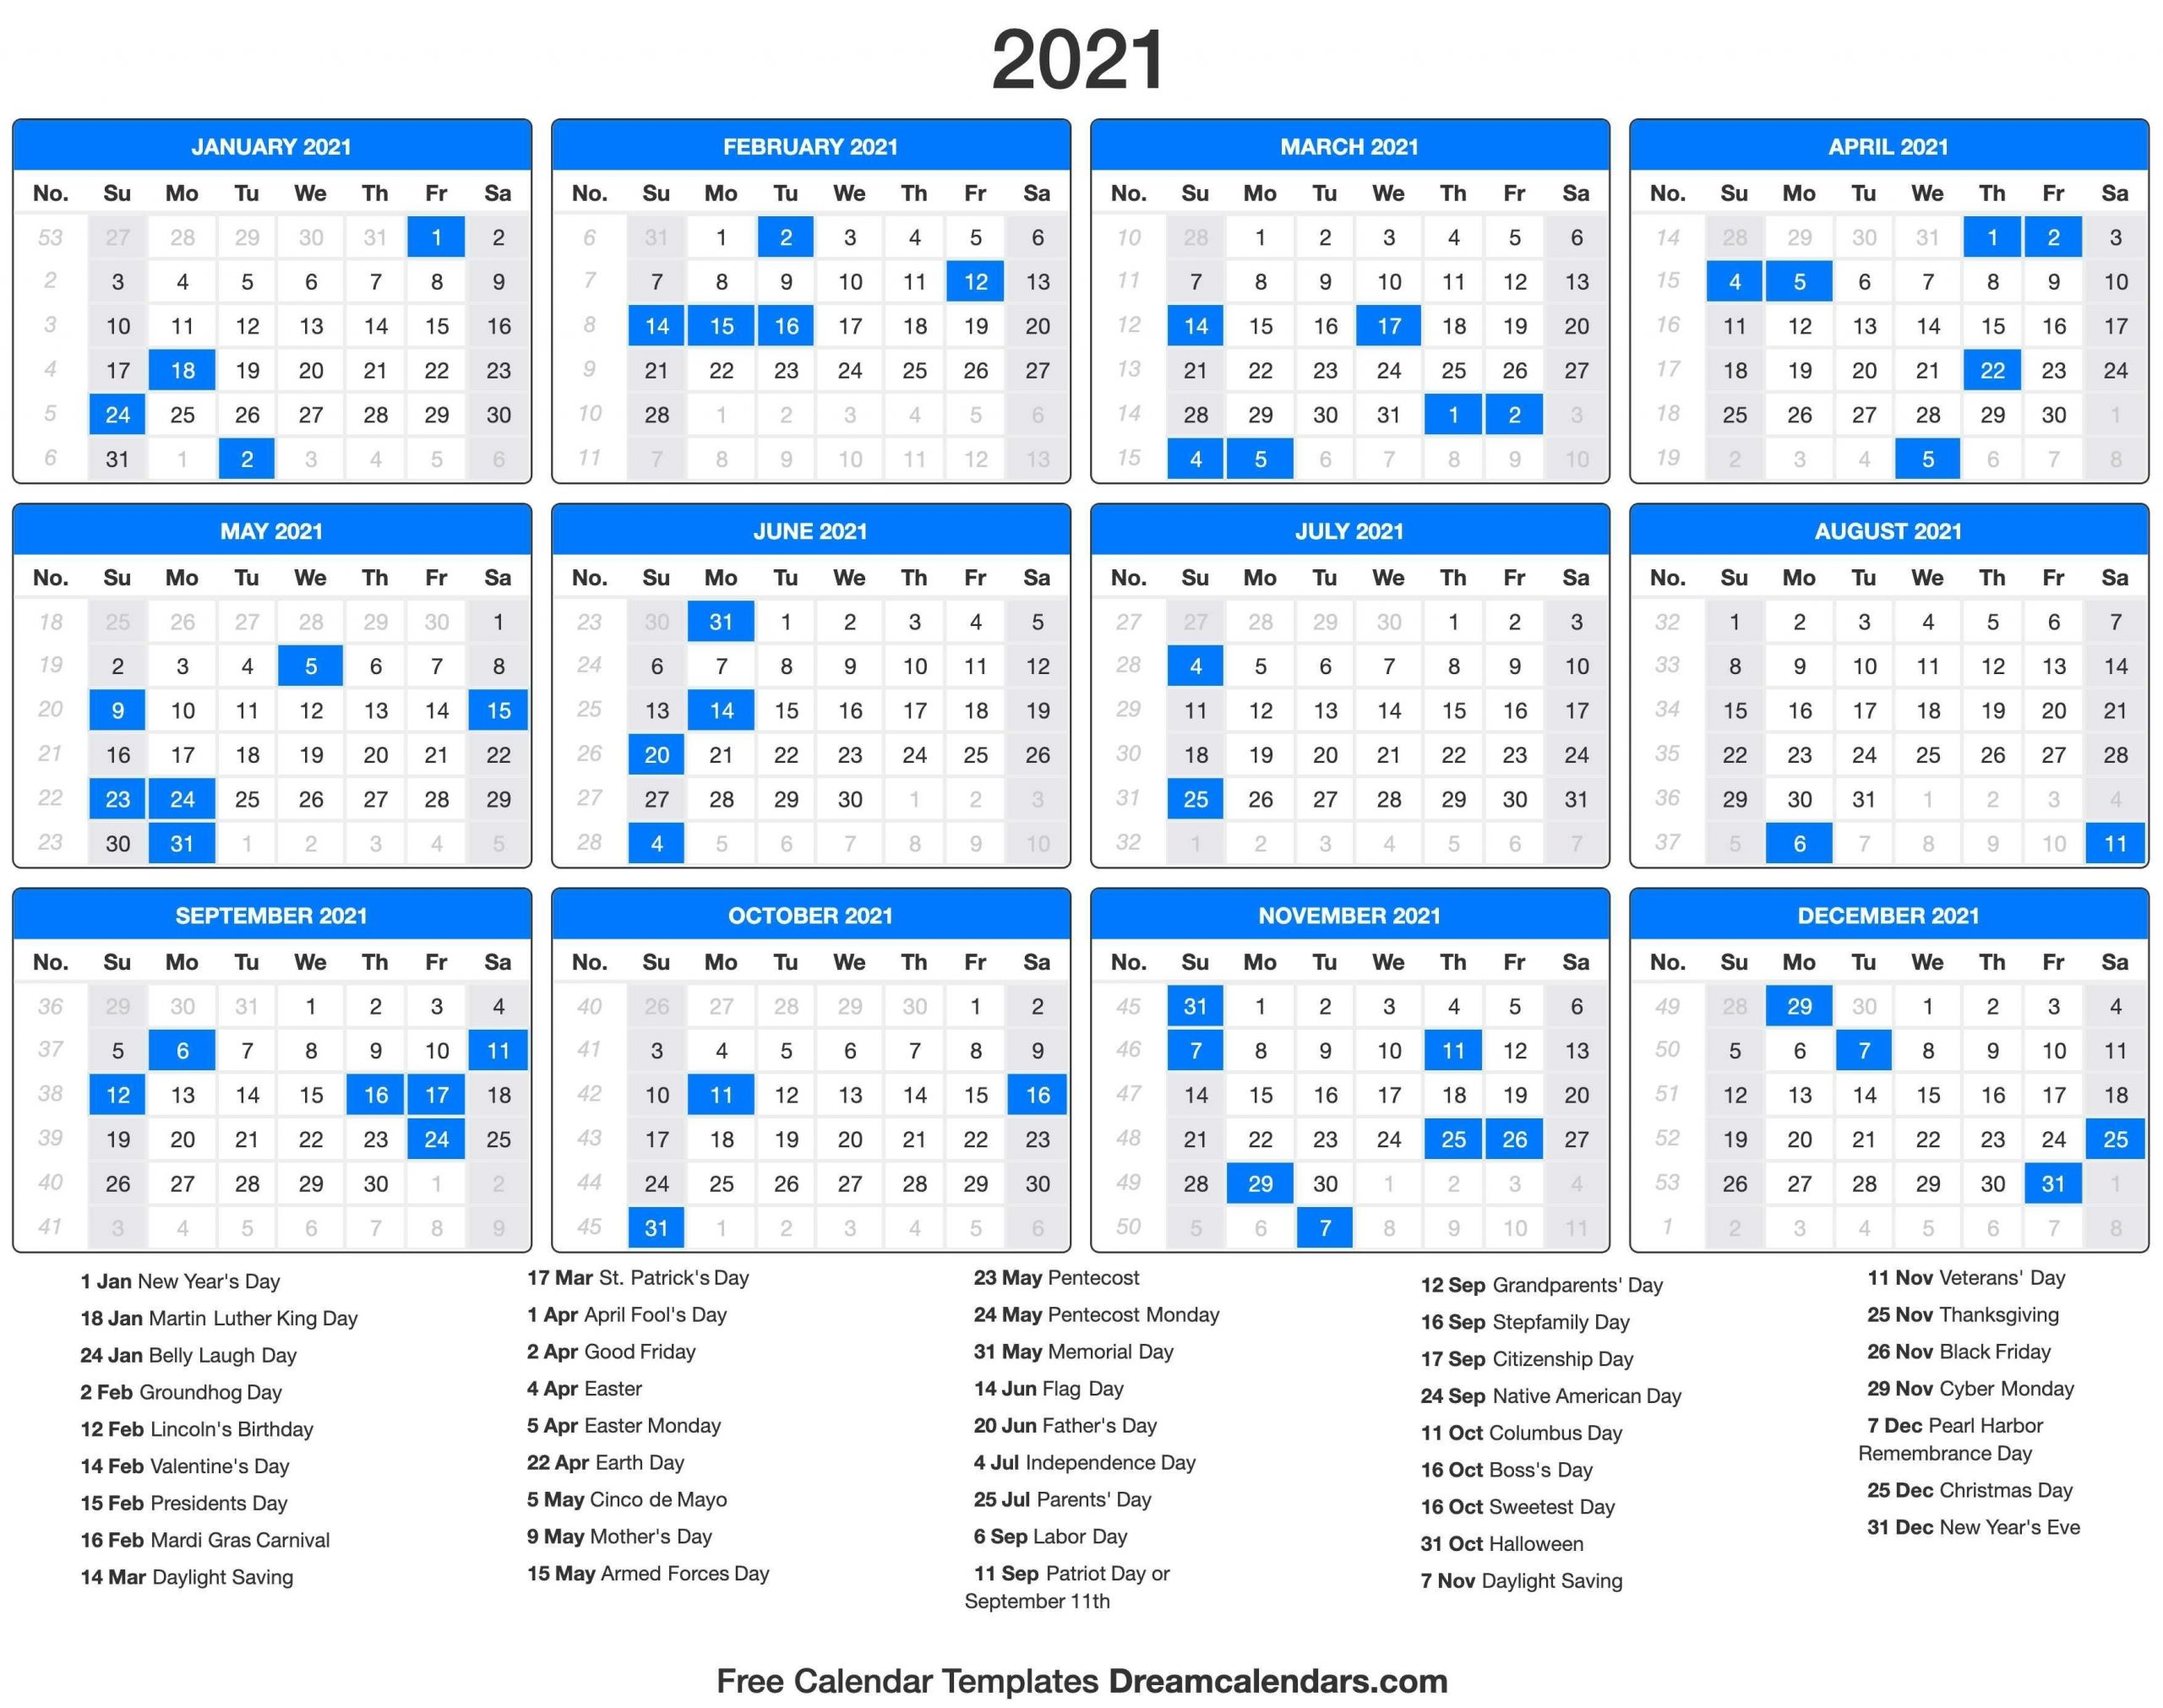 2021 Holidays - Free Download Printable Calendar Templates inside 2021 Calendar With Numbered Days